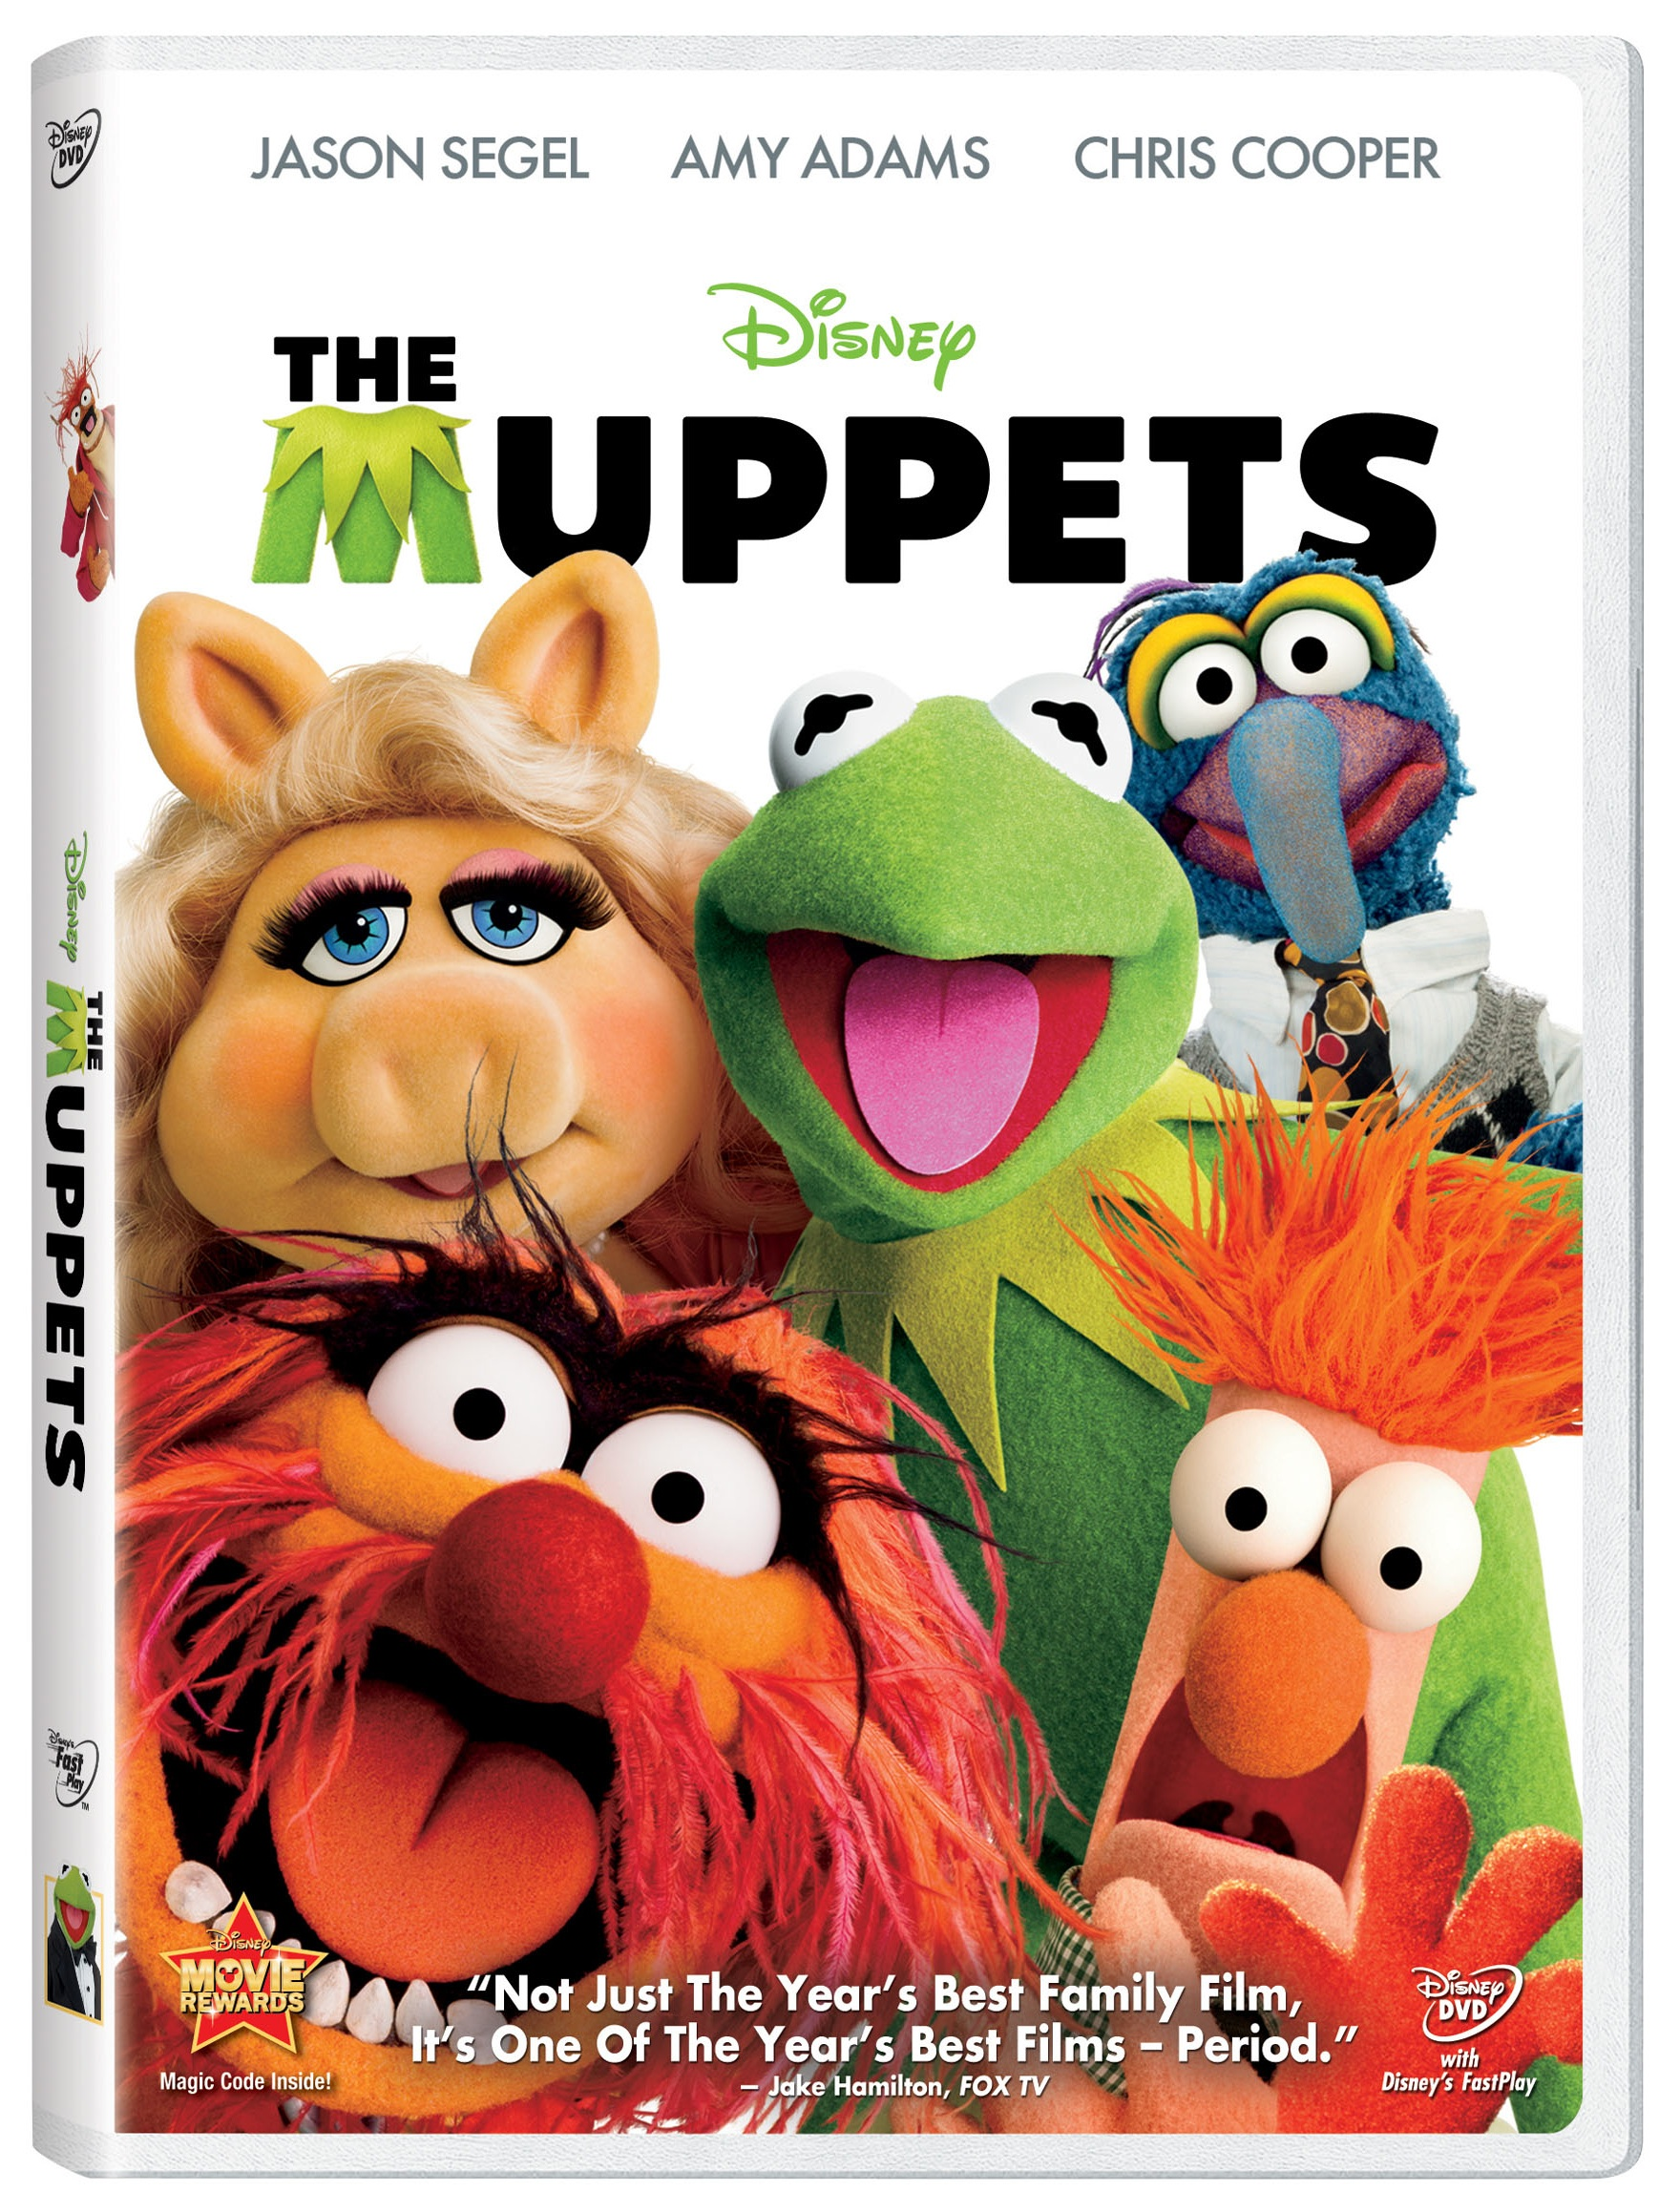 TheMuppets-DVD-1